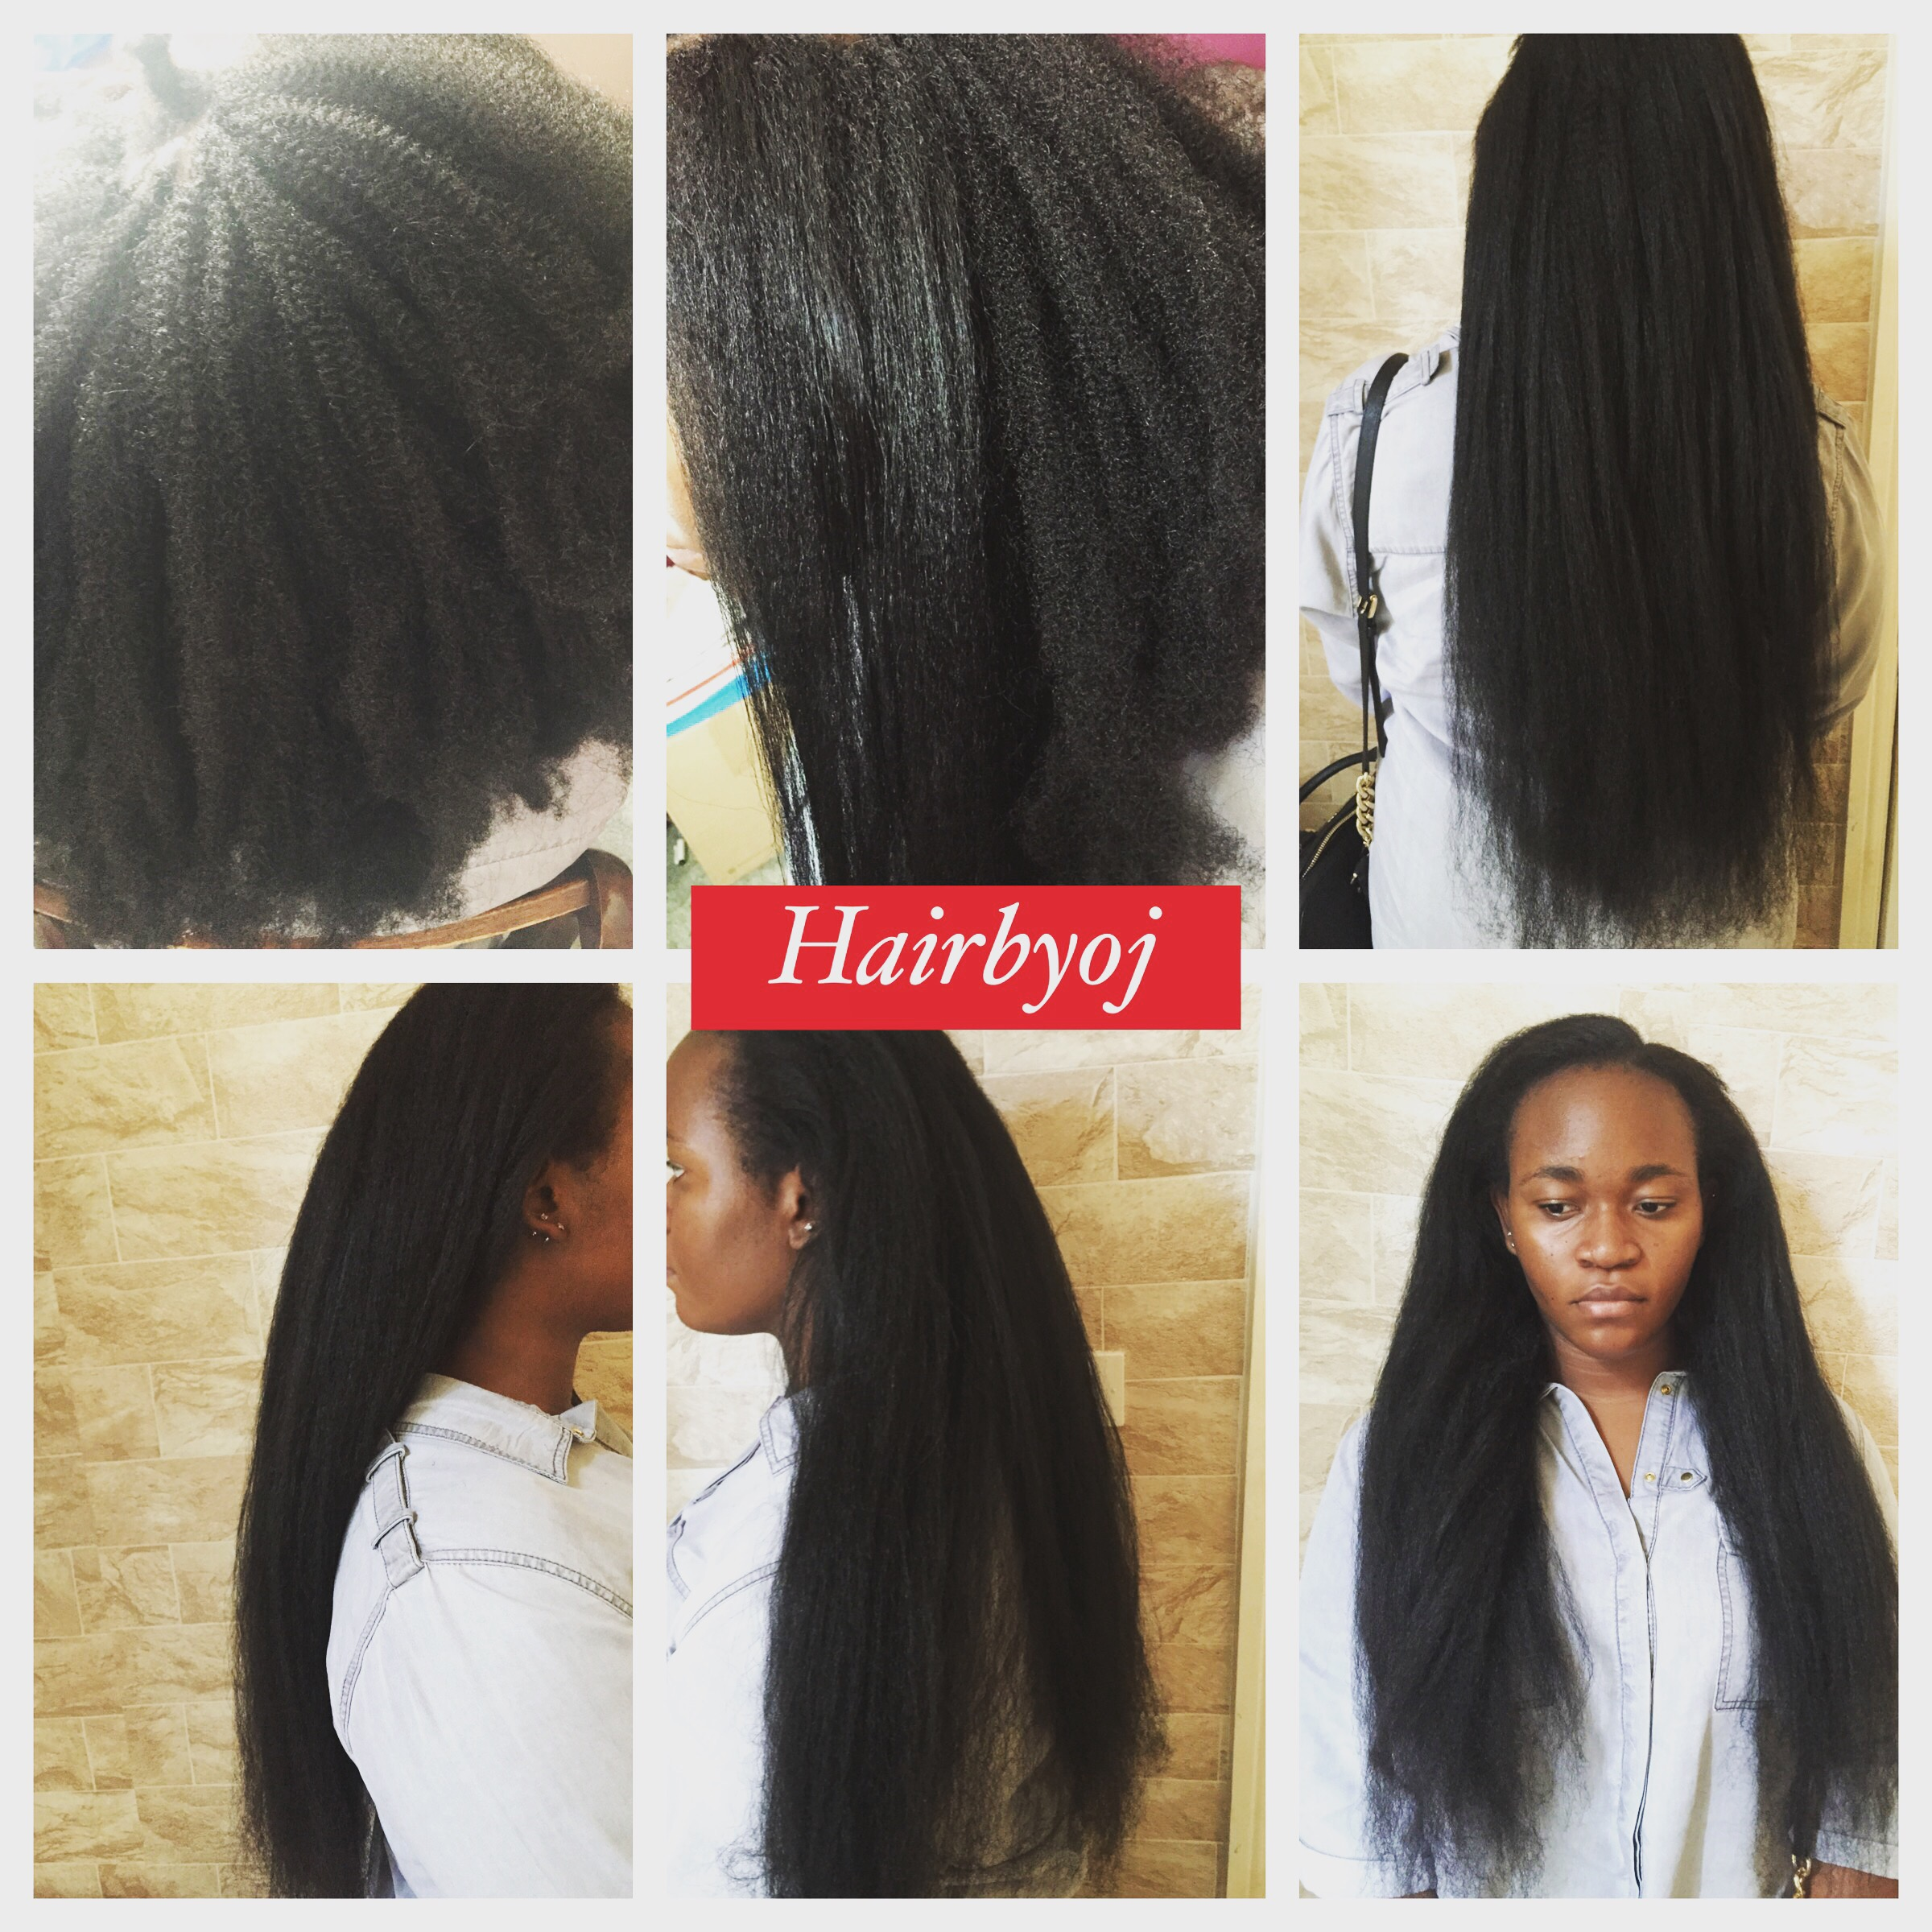 Crochet Braids With Leave Out : ... leave out a very minimal amount of hair or avoid leaving out any if